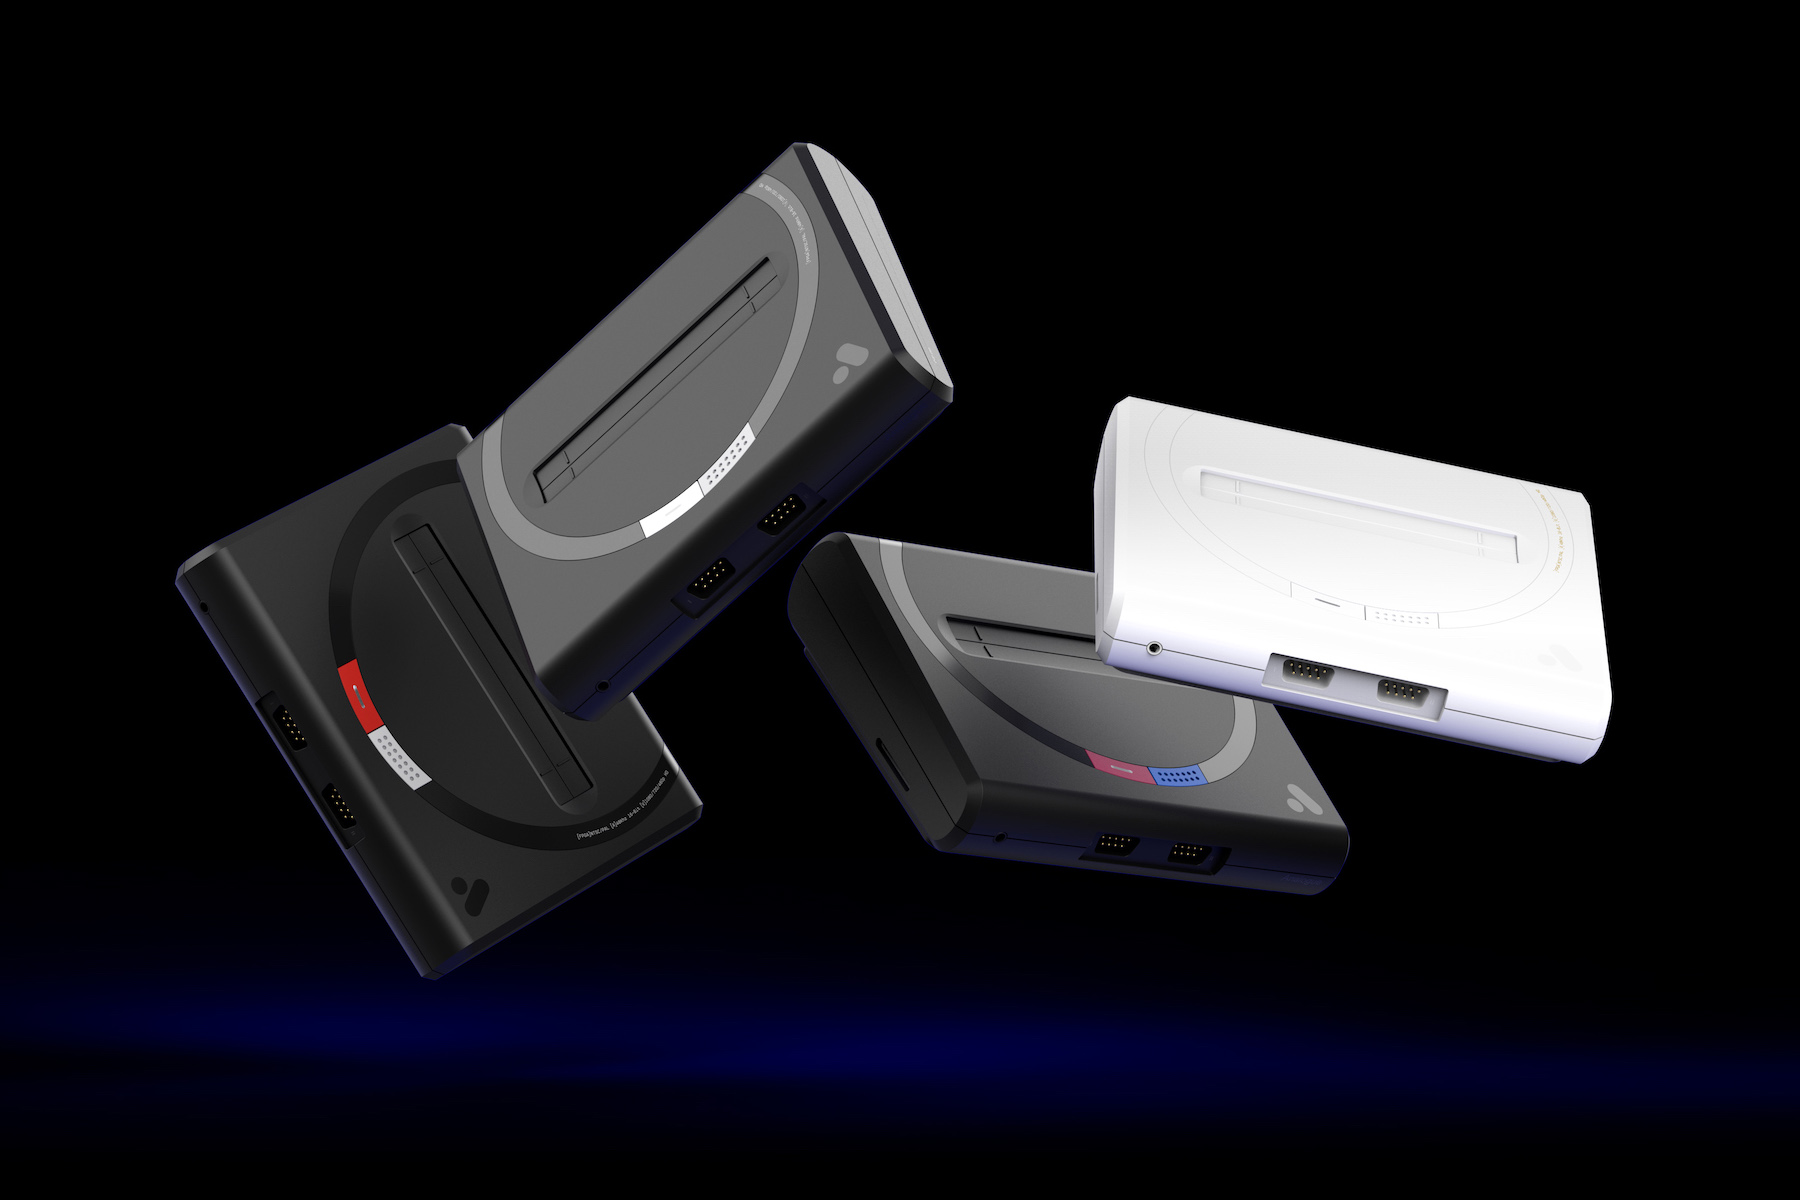 The Analogue Mega SG wins the retro gaming console war